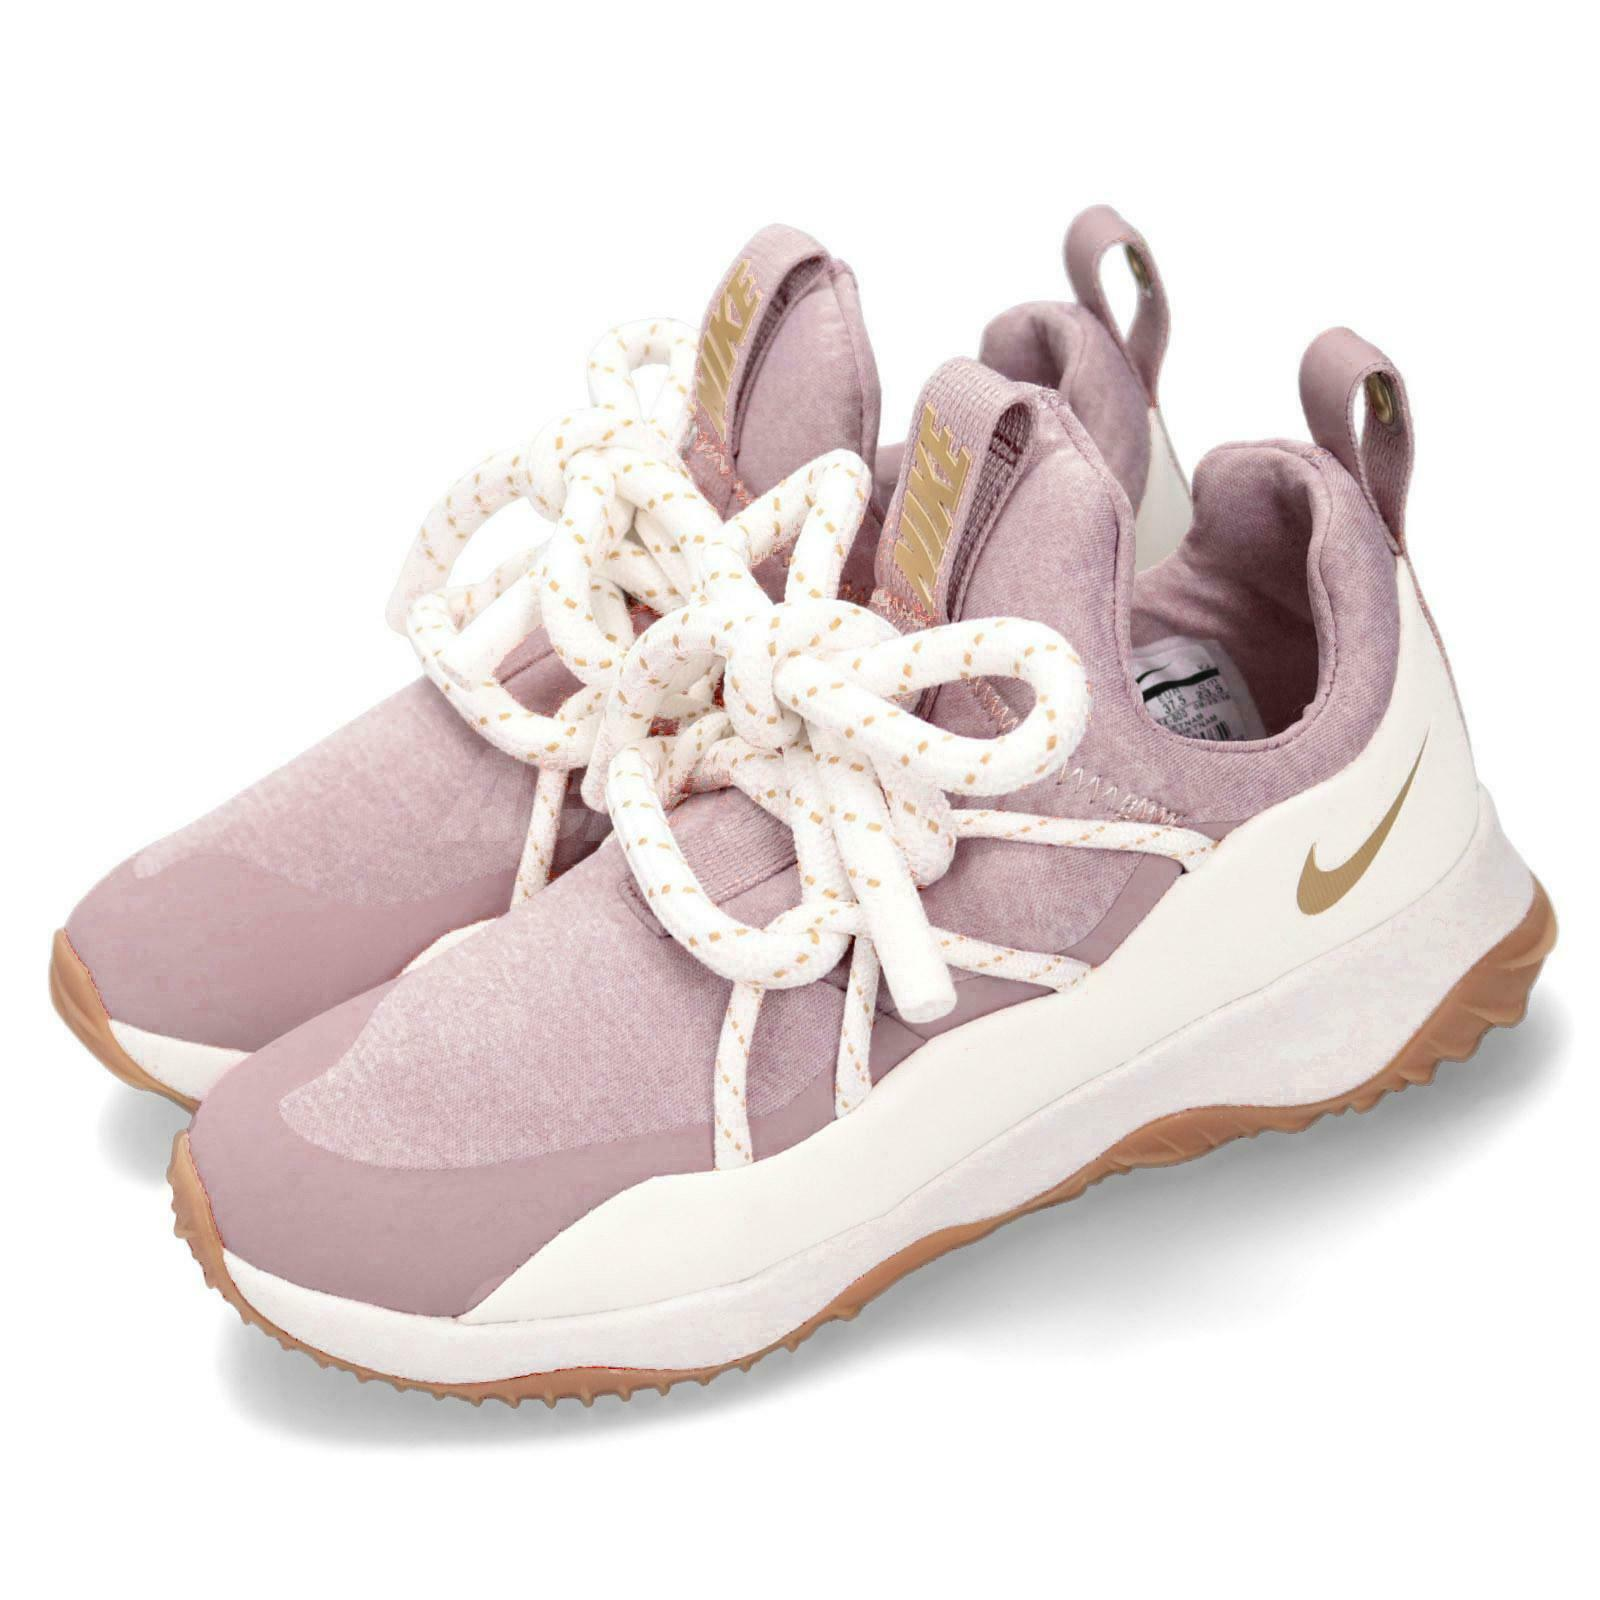 Nike Wmns City Loop RUNS SMALL Particle pink gold Gum Women shoes BQ6994-600